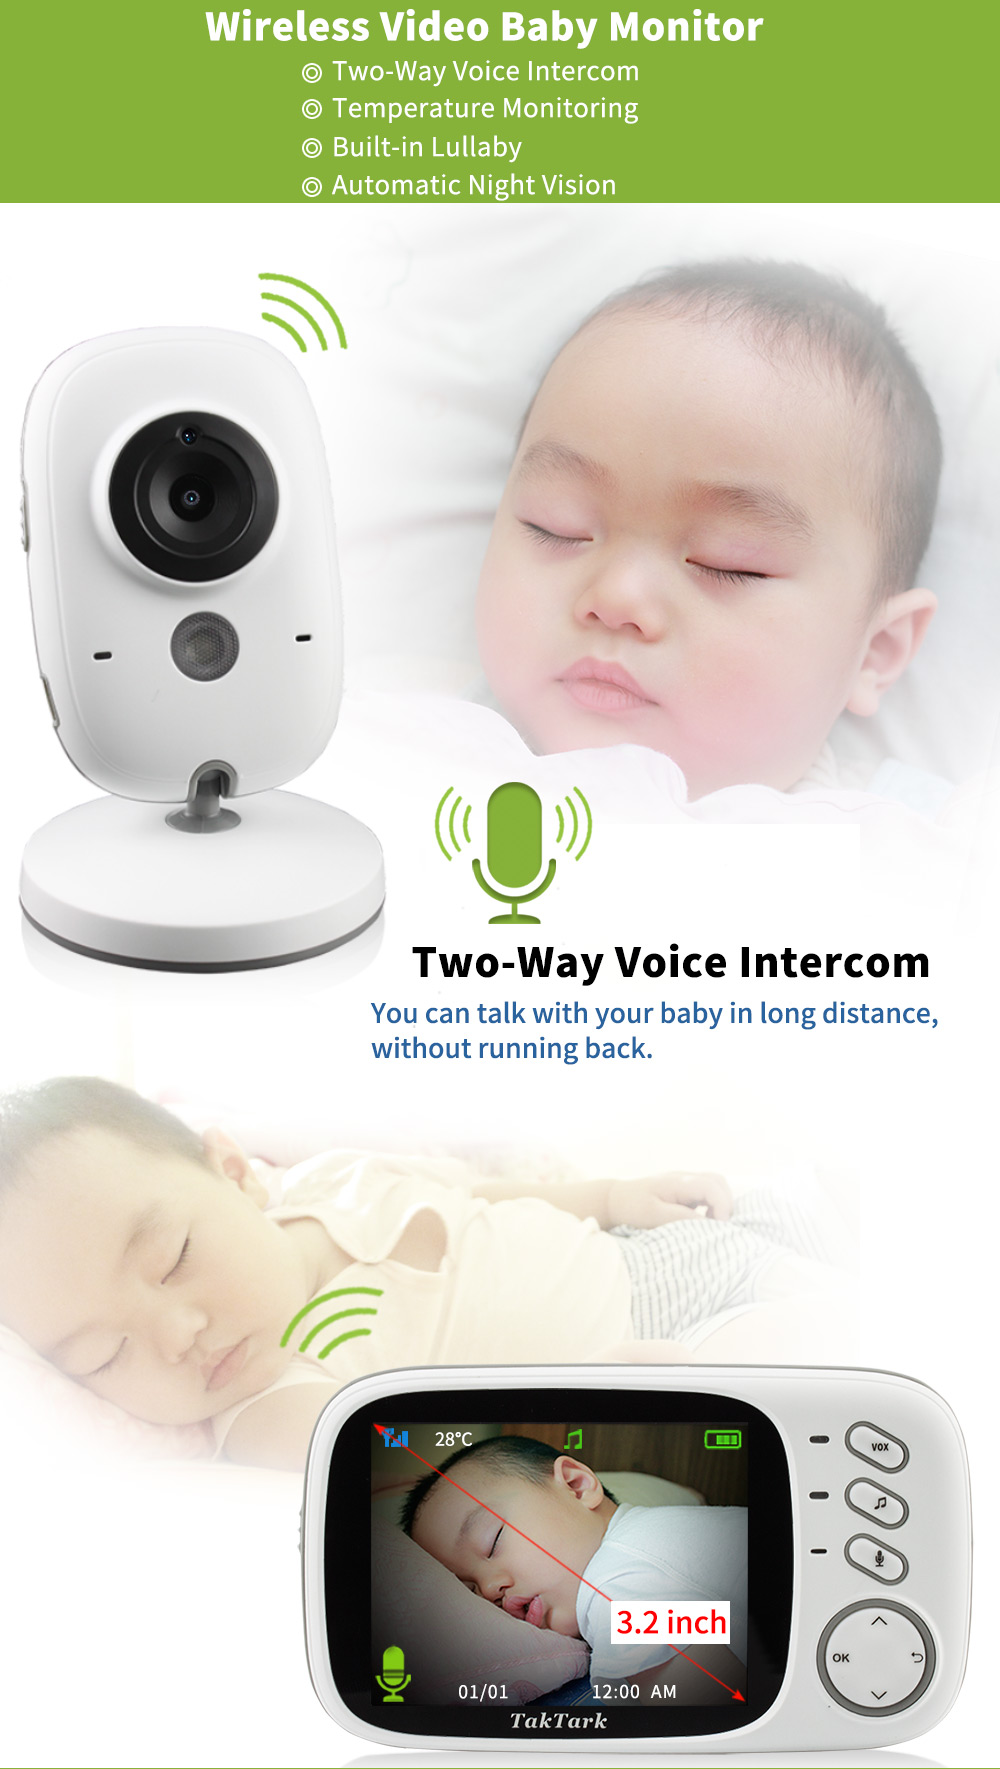 Wireless Video Baby Monitor - Beyond Baby Talk